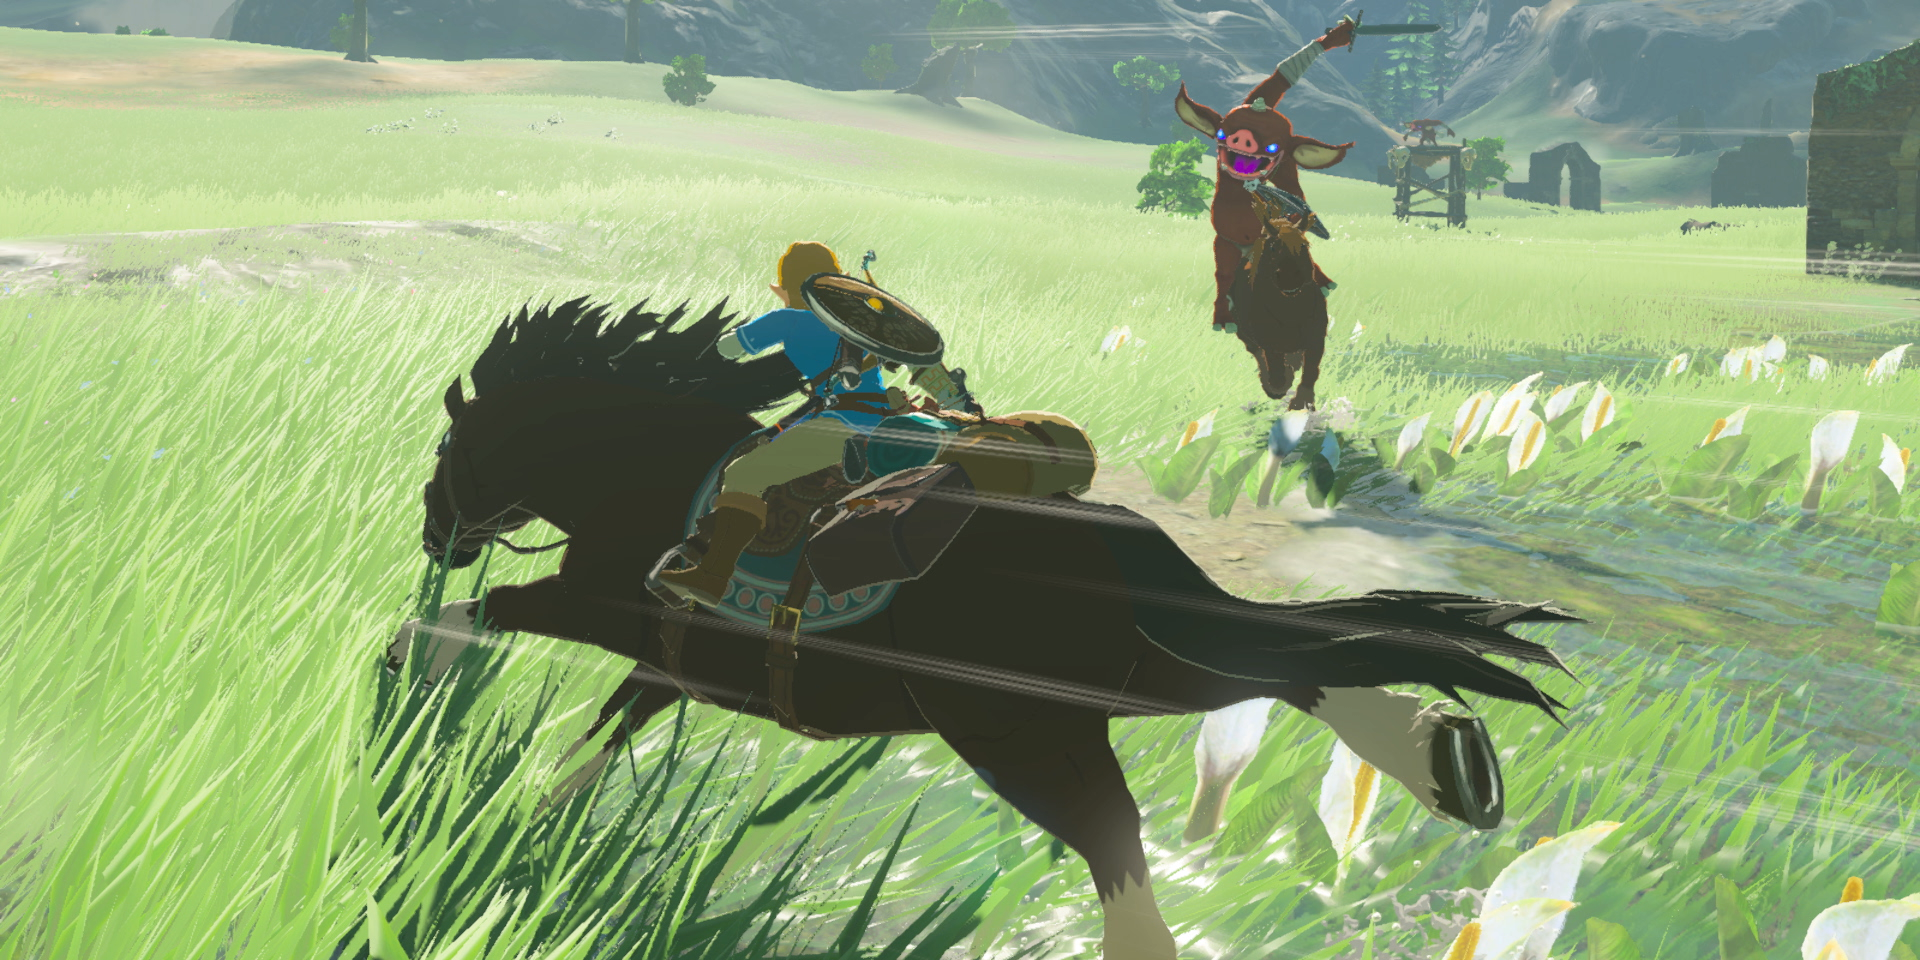 5 Crazy Things You Can Do in 'Breath of the Wild'